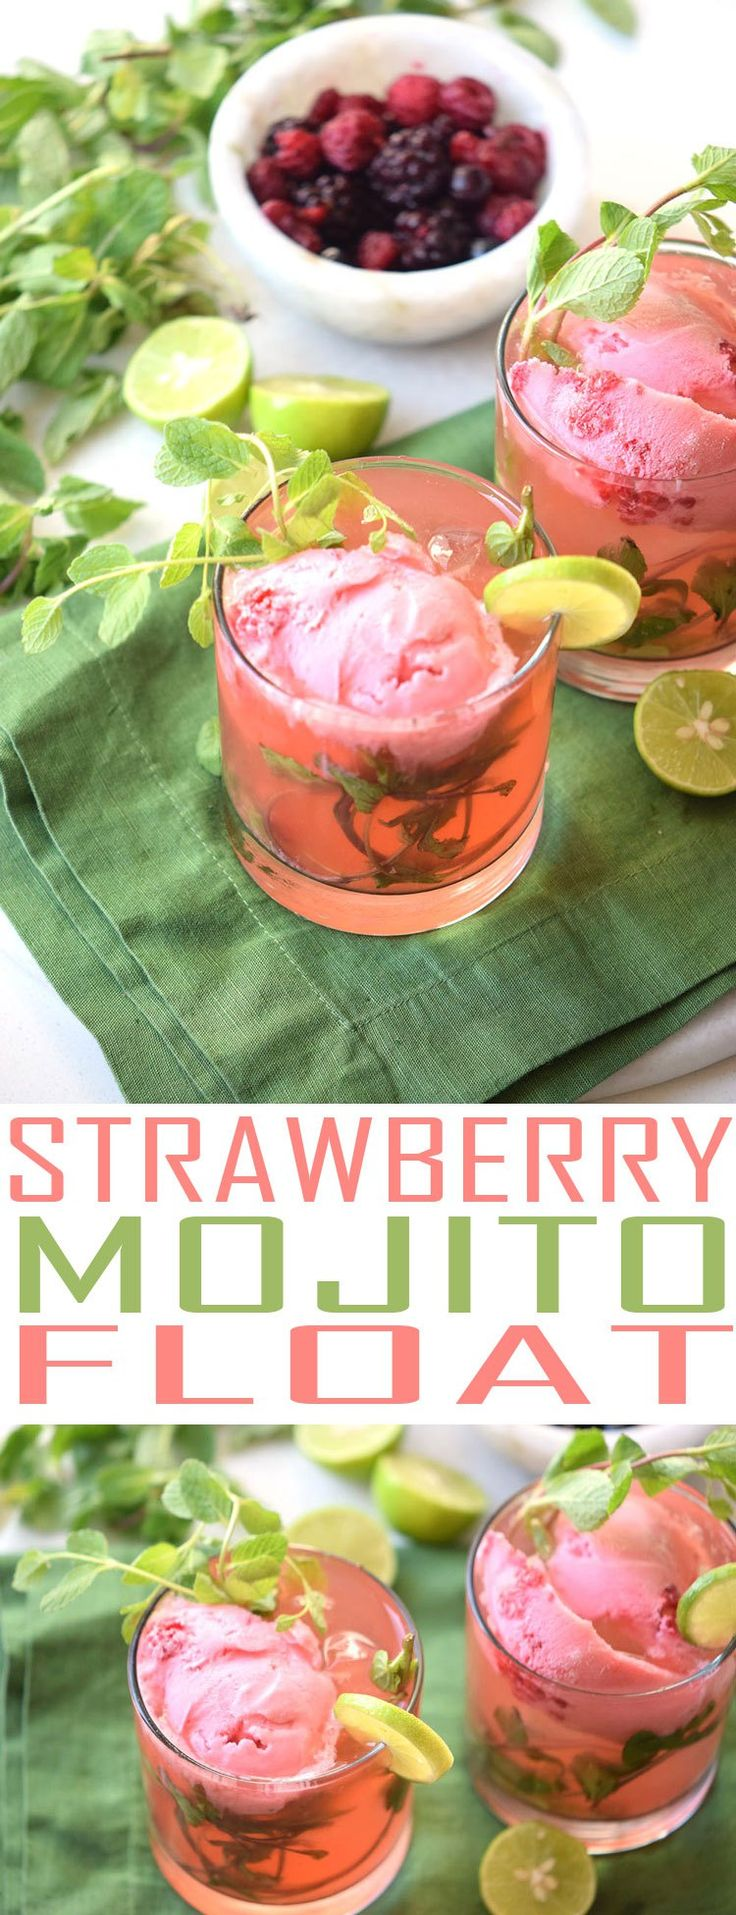 Try this fun cocktail float. This Strawberry Mojito Float is a refreshing alcoholic beverage perfect for sharing with friends or for an evening cocktail.